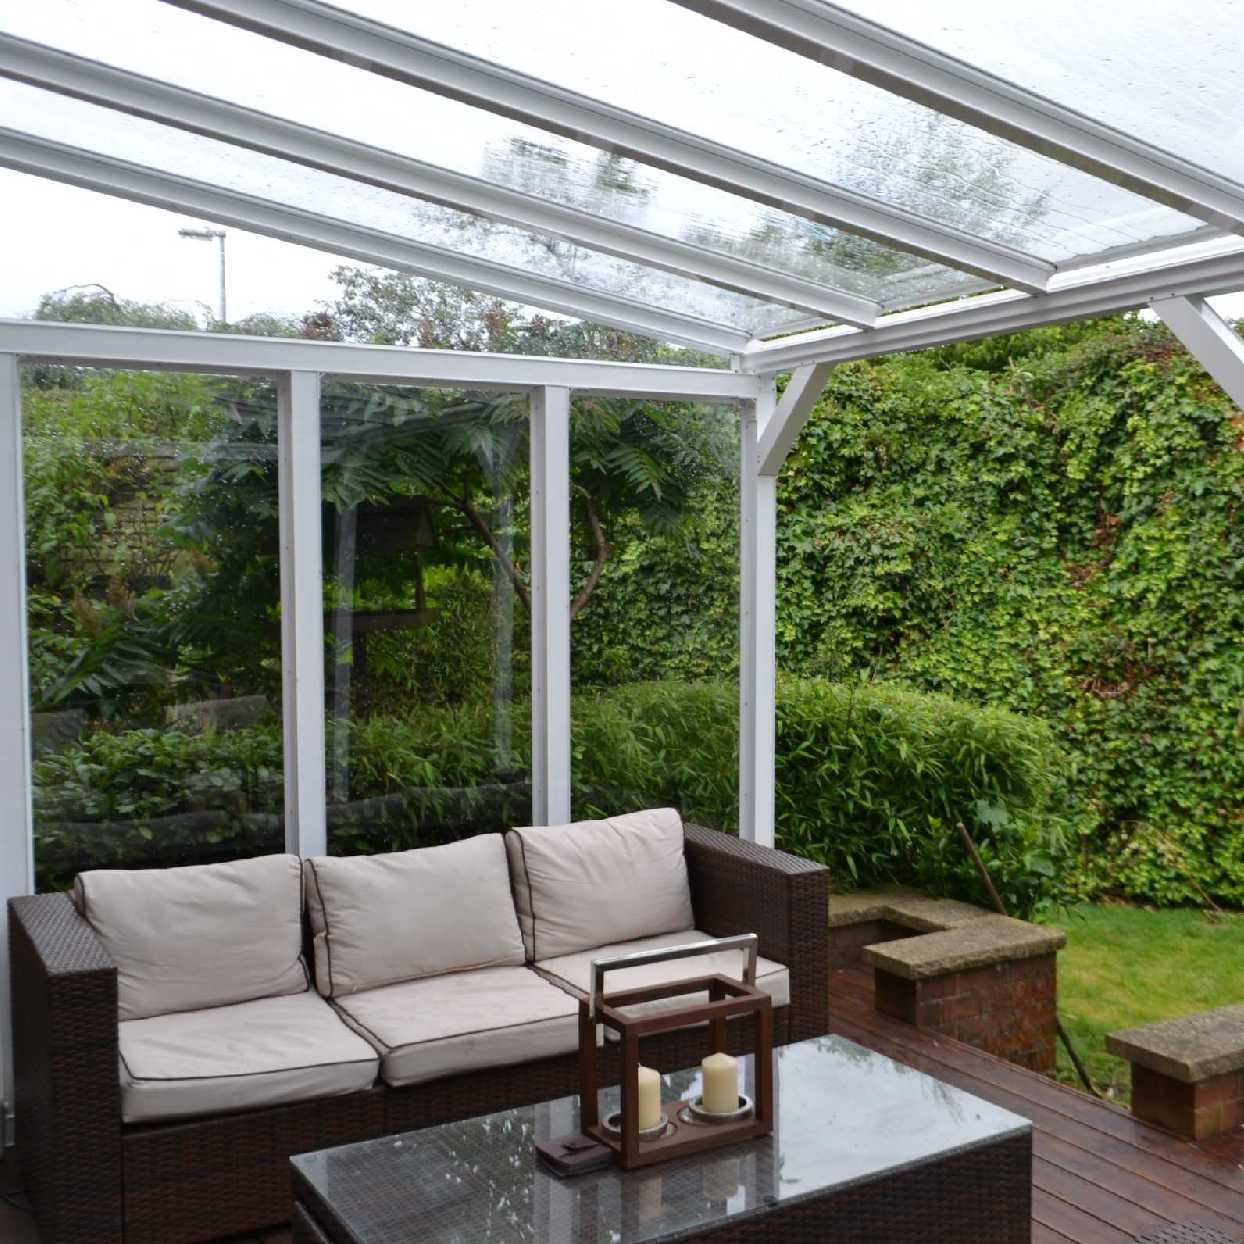 Omega Smart Lean-To Canopy with 6mm Glass Clear Plate Polycarbonate Glazing - 2.8m (W) x 1.5m (P), (2) Supporting Posts